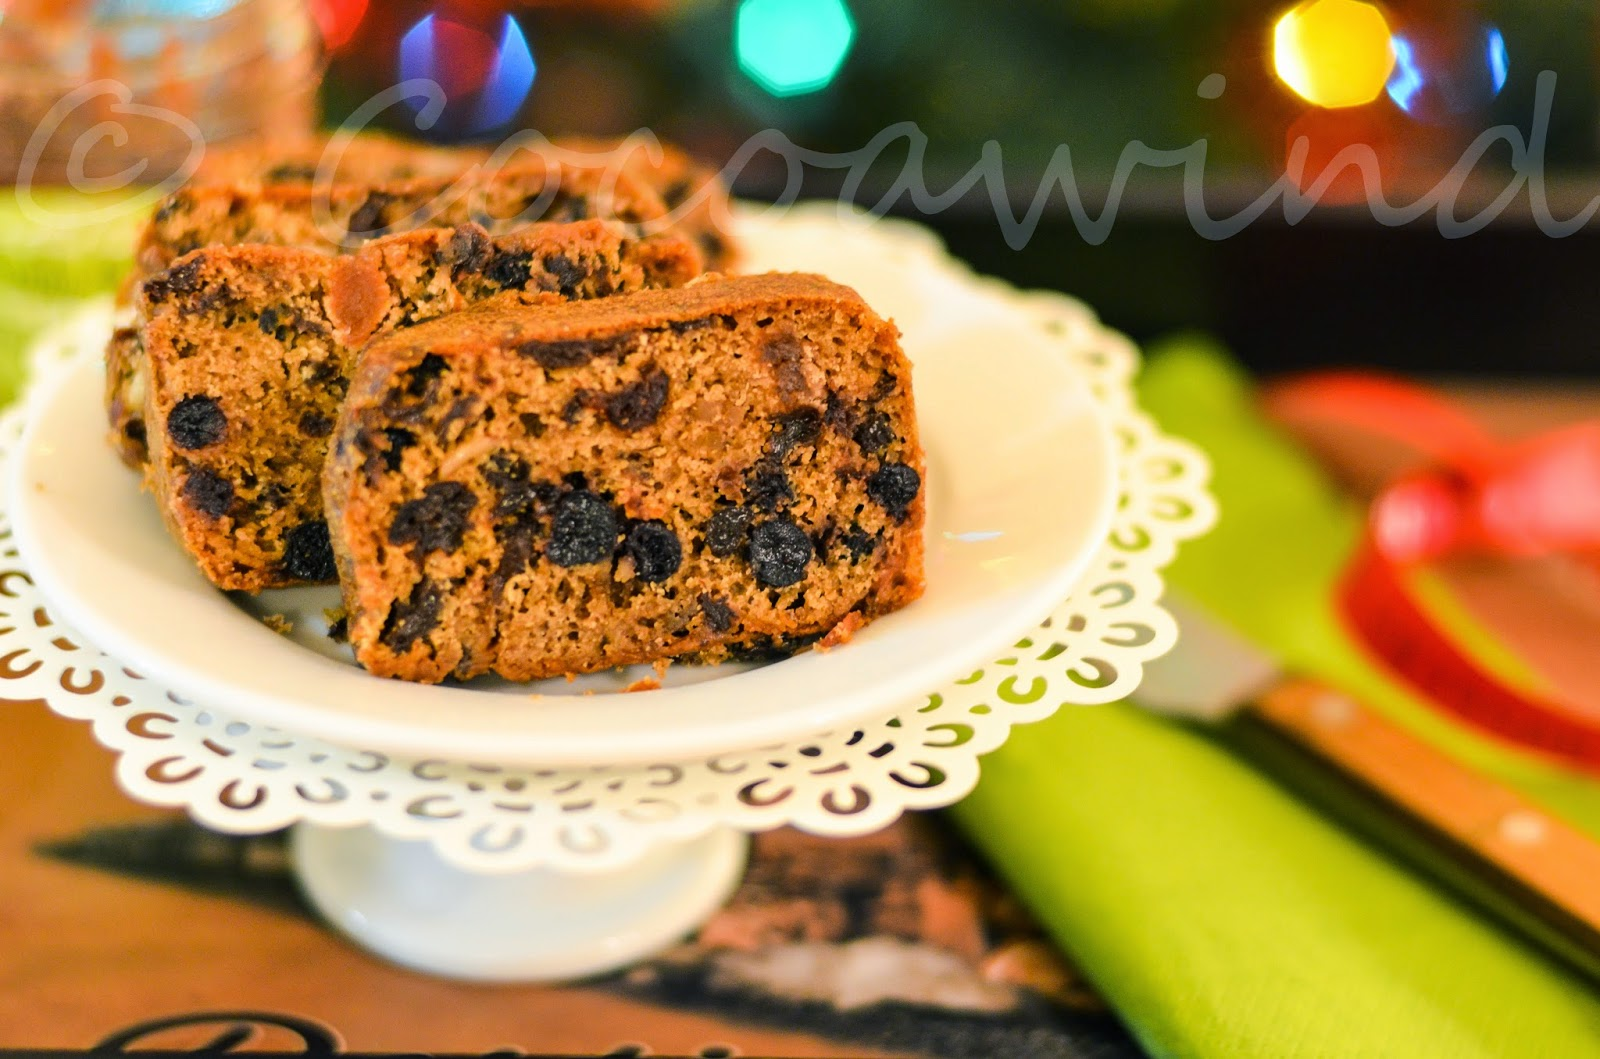 Alton Brown's Fruit Cake